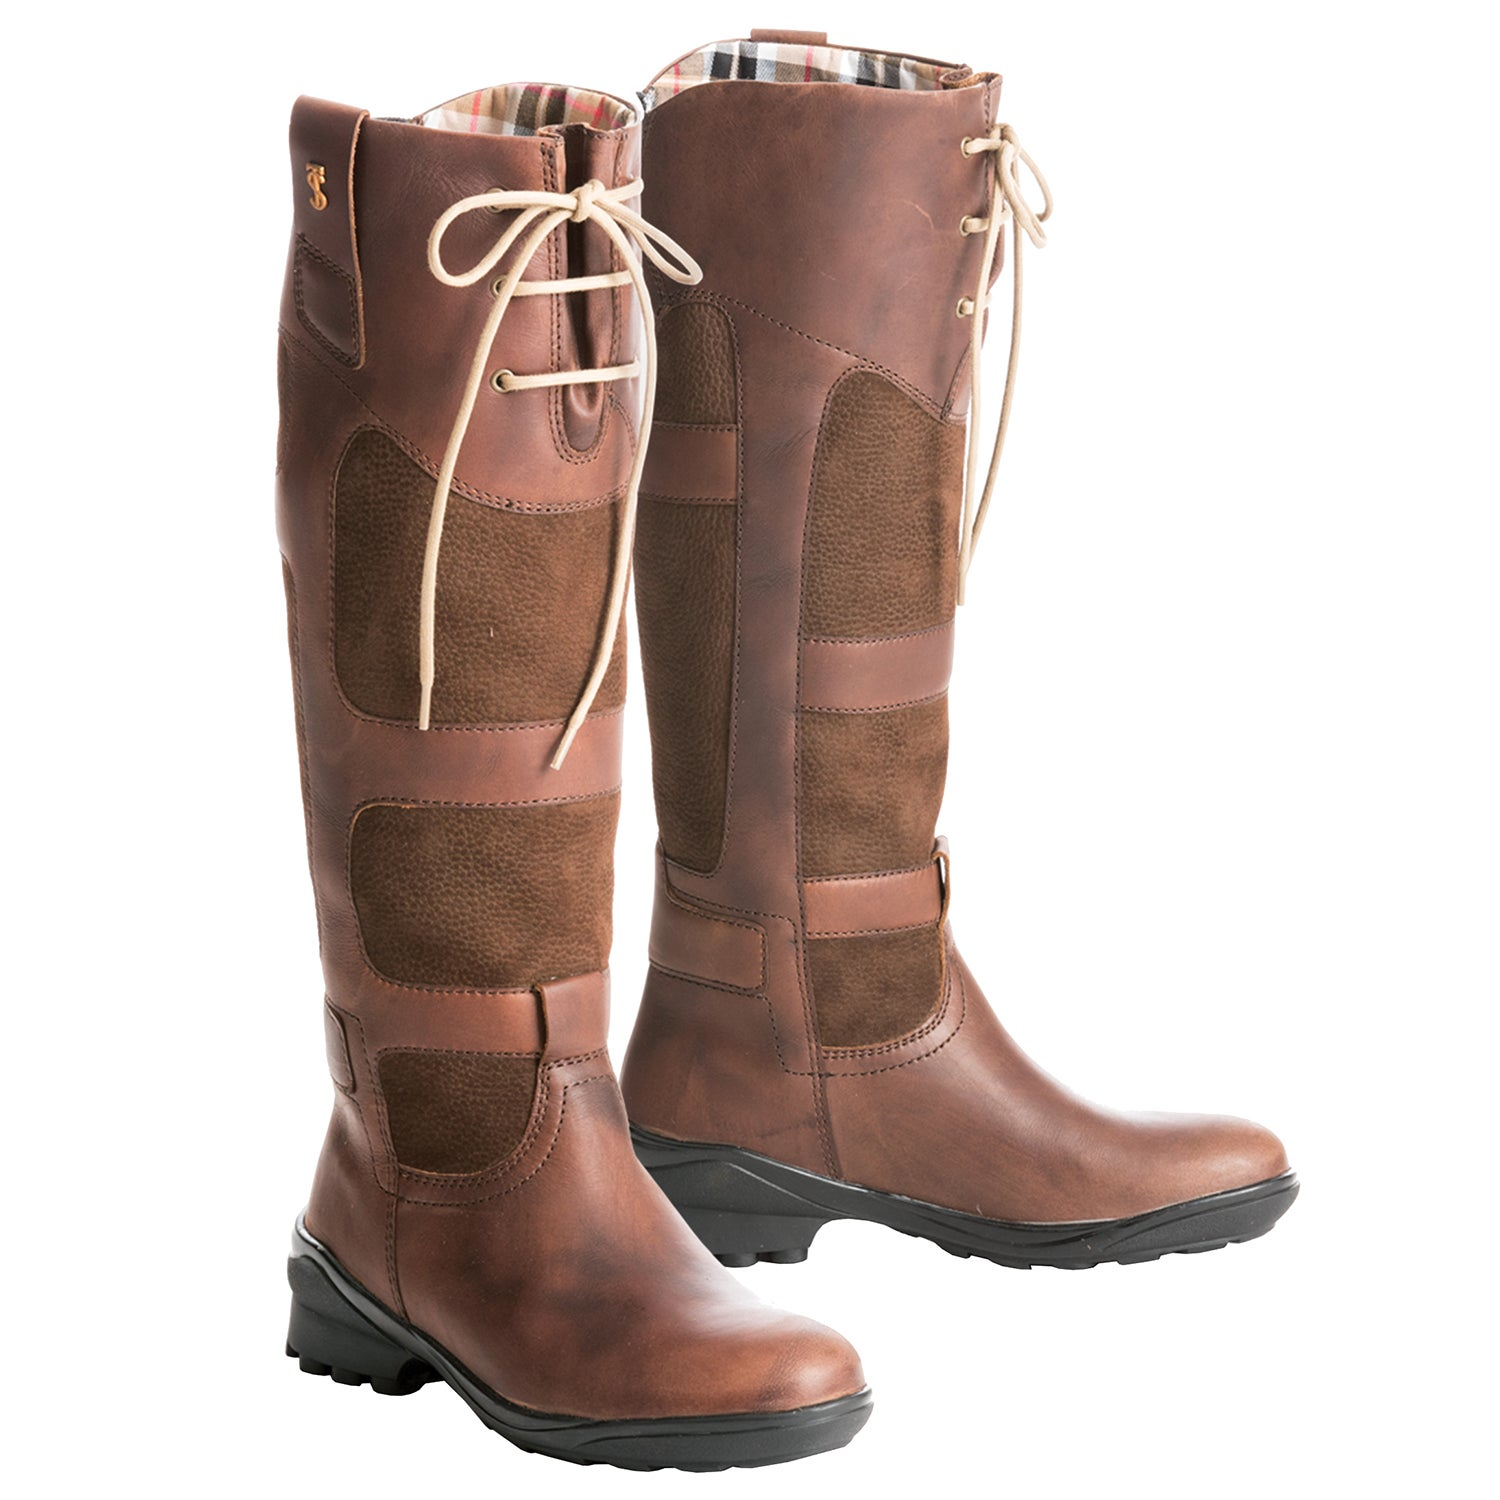 b78fc0cf993 Tredstep Avoca Wide Fit Pull On Ladies Country Boots from Rideaway